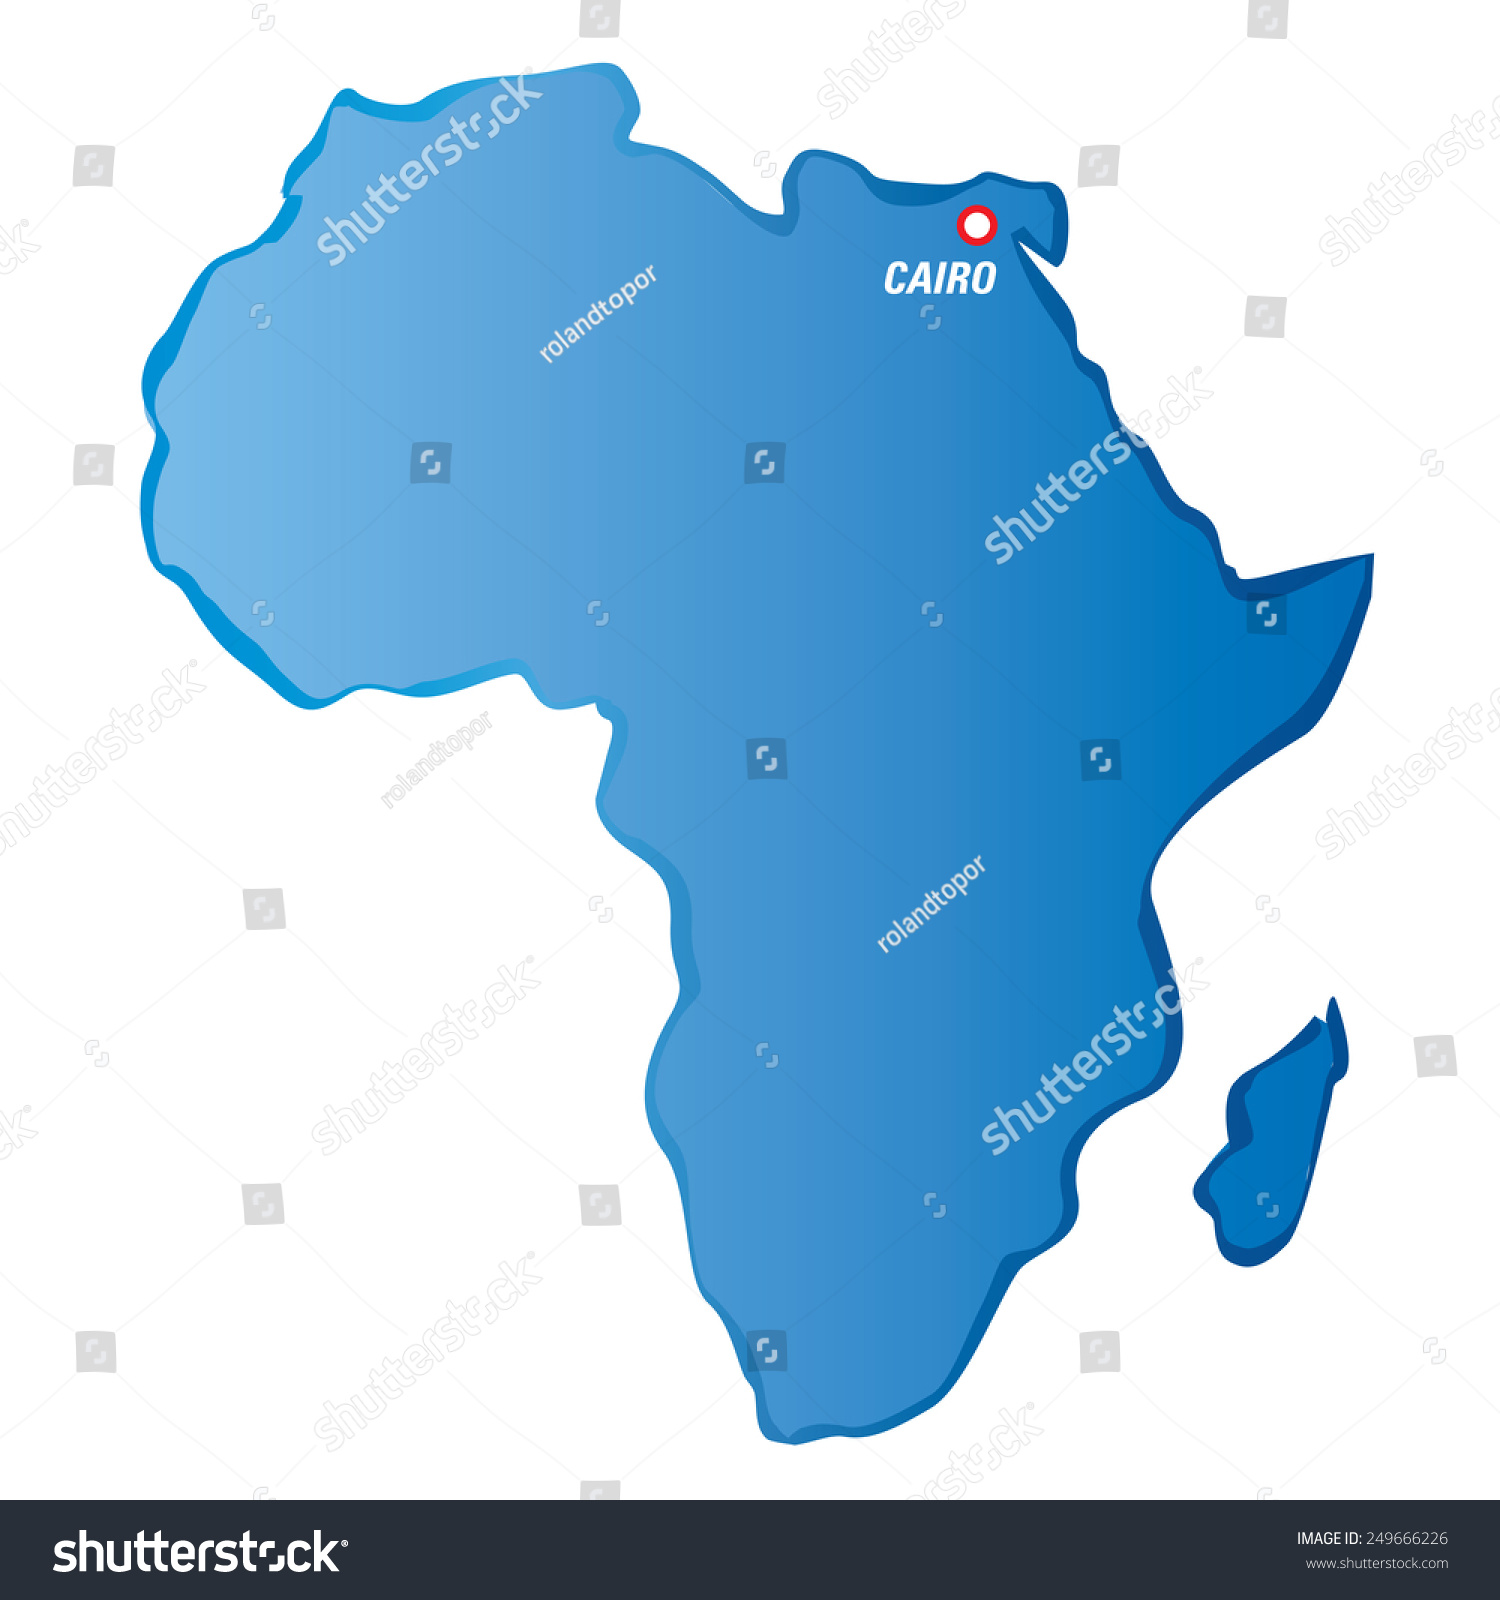 Blue Vector Map Africa Cairo Stock Vector (Royalty Free) 249666226 ...